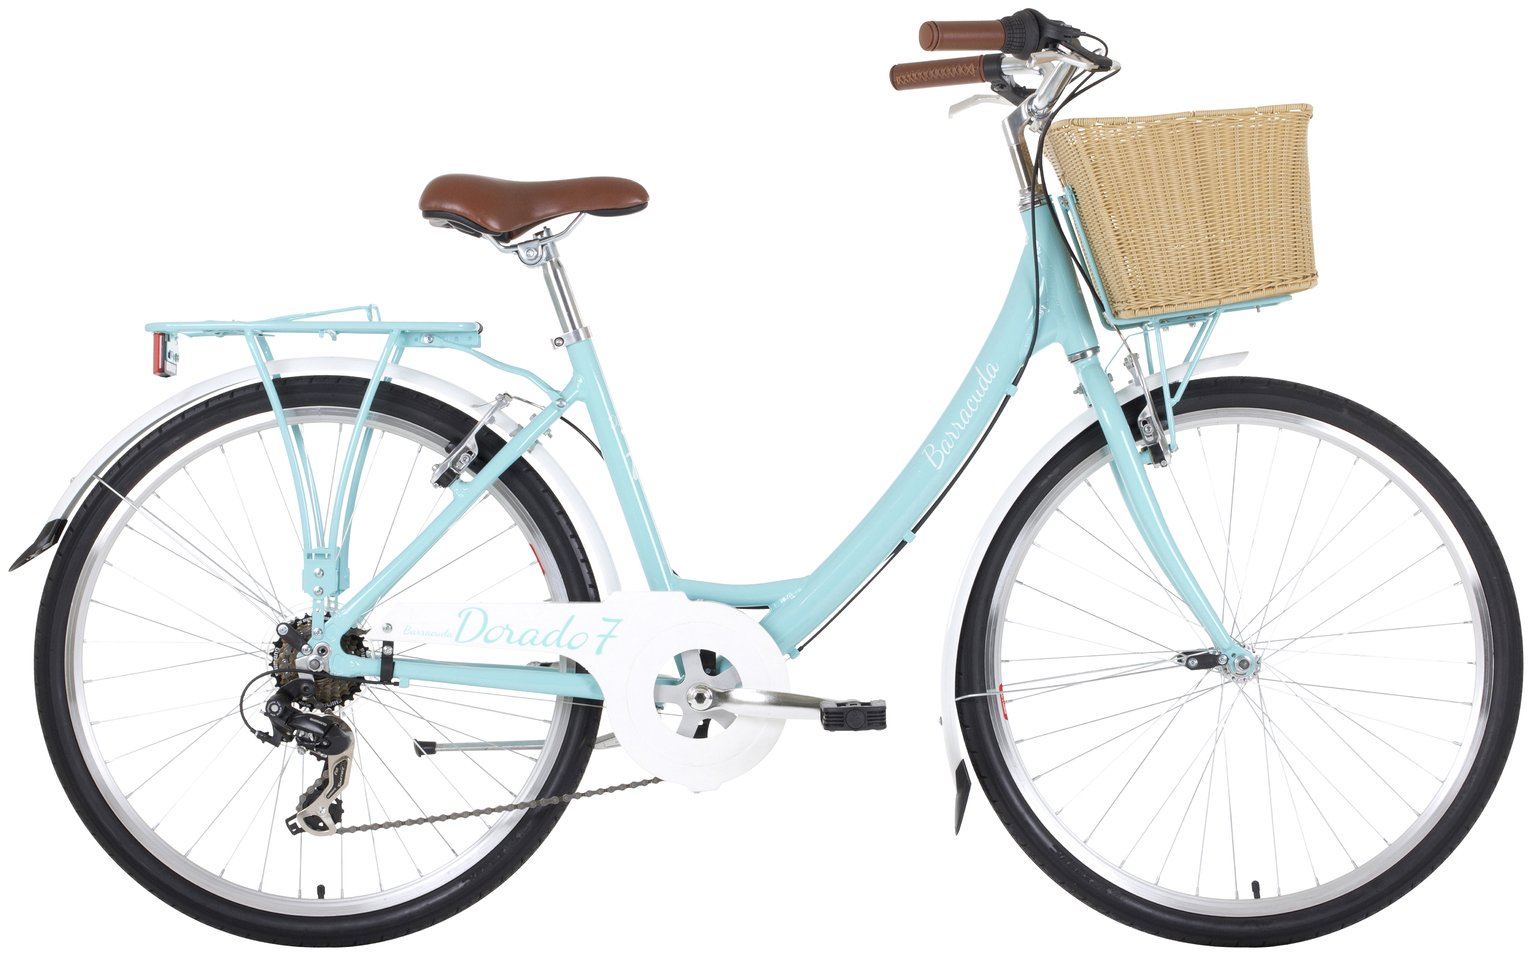 Image of Barracuda Dorado 7 19 inch Hybrid Bike - Adult's.